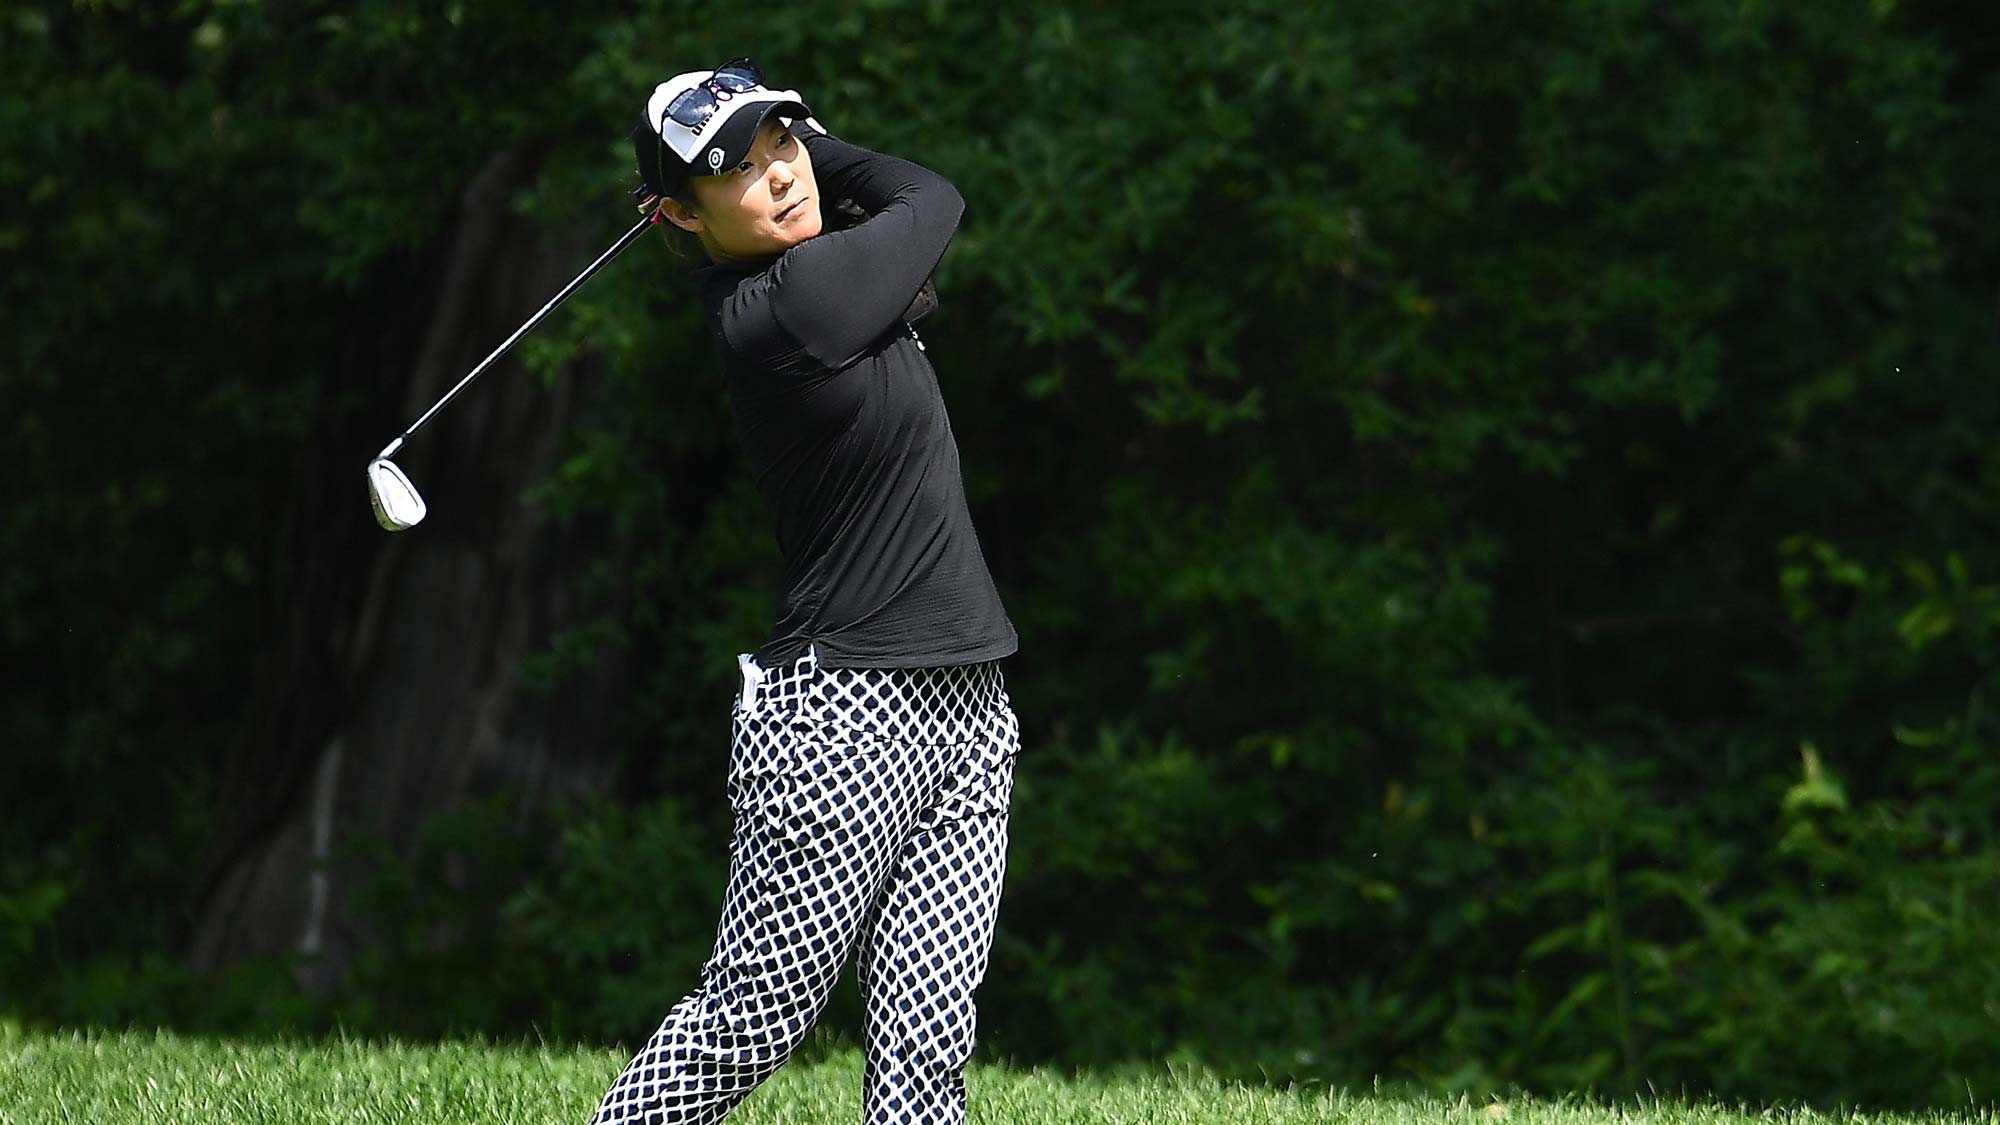 Tiffany Joh hits her approach shot on the first hole during the third round of the Thornberry Creek LPGA Classic